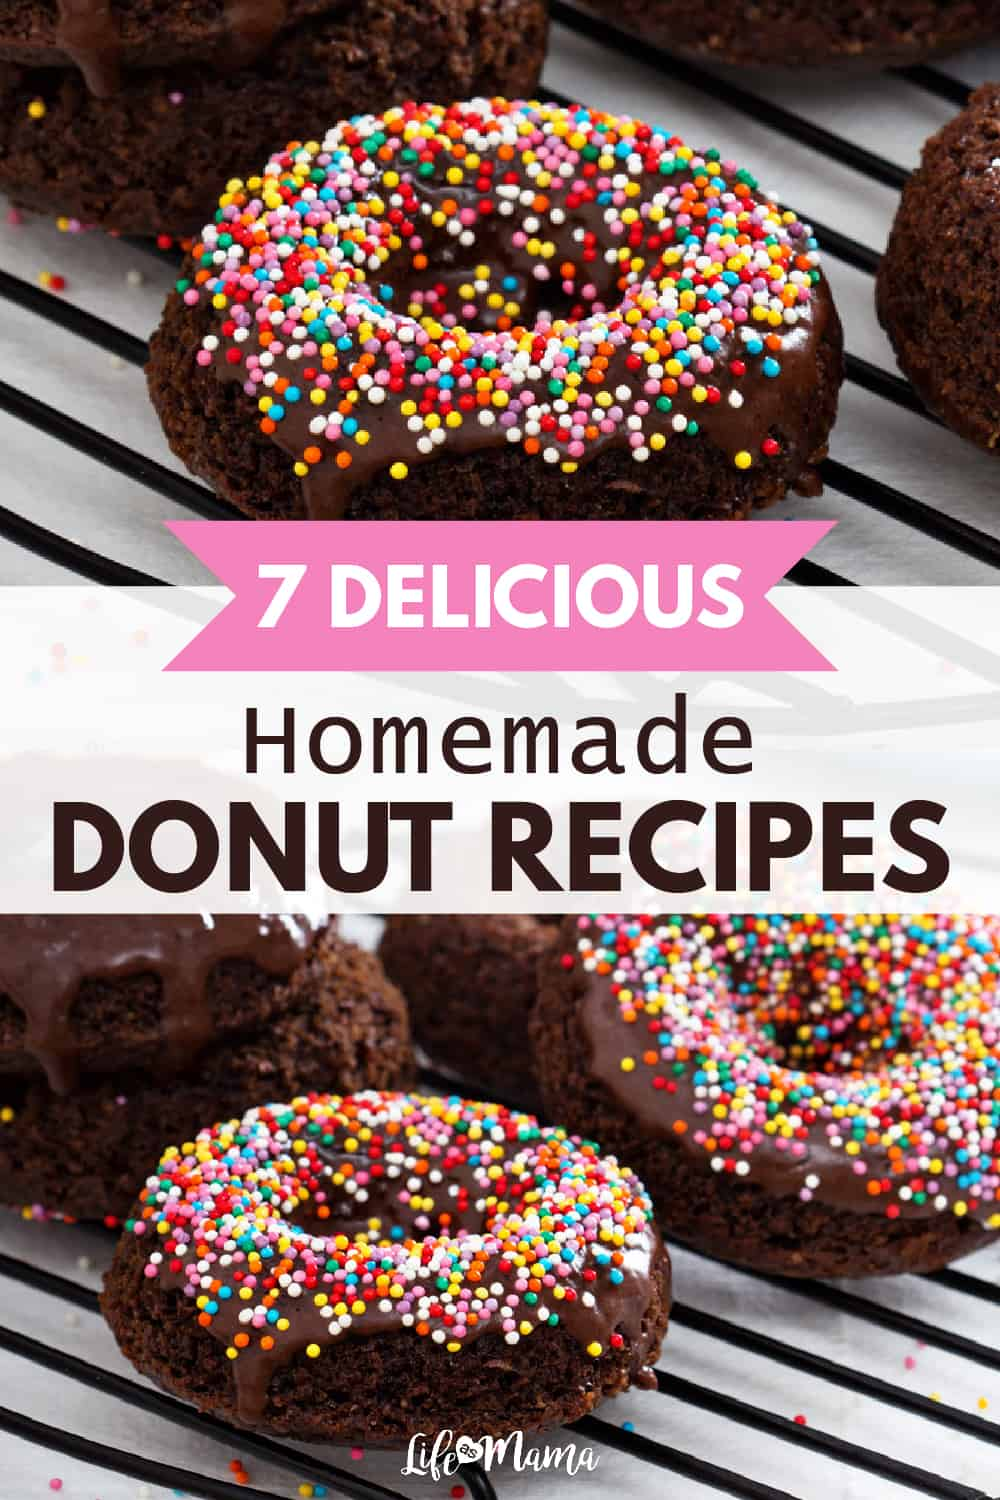 7 Delicious Homemade Donut Recipes